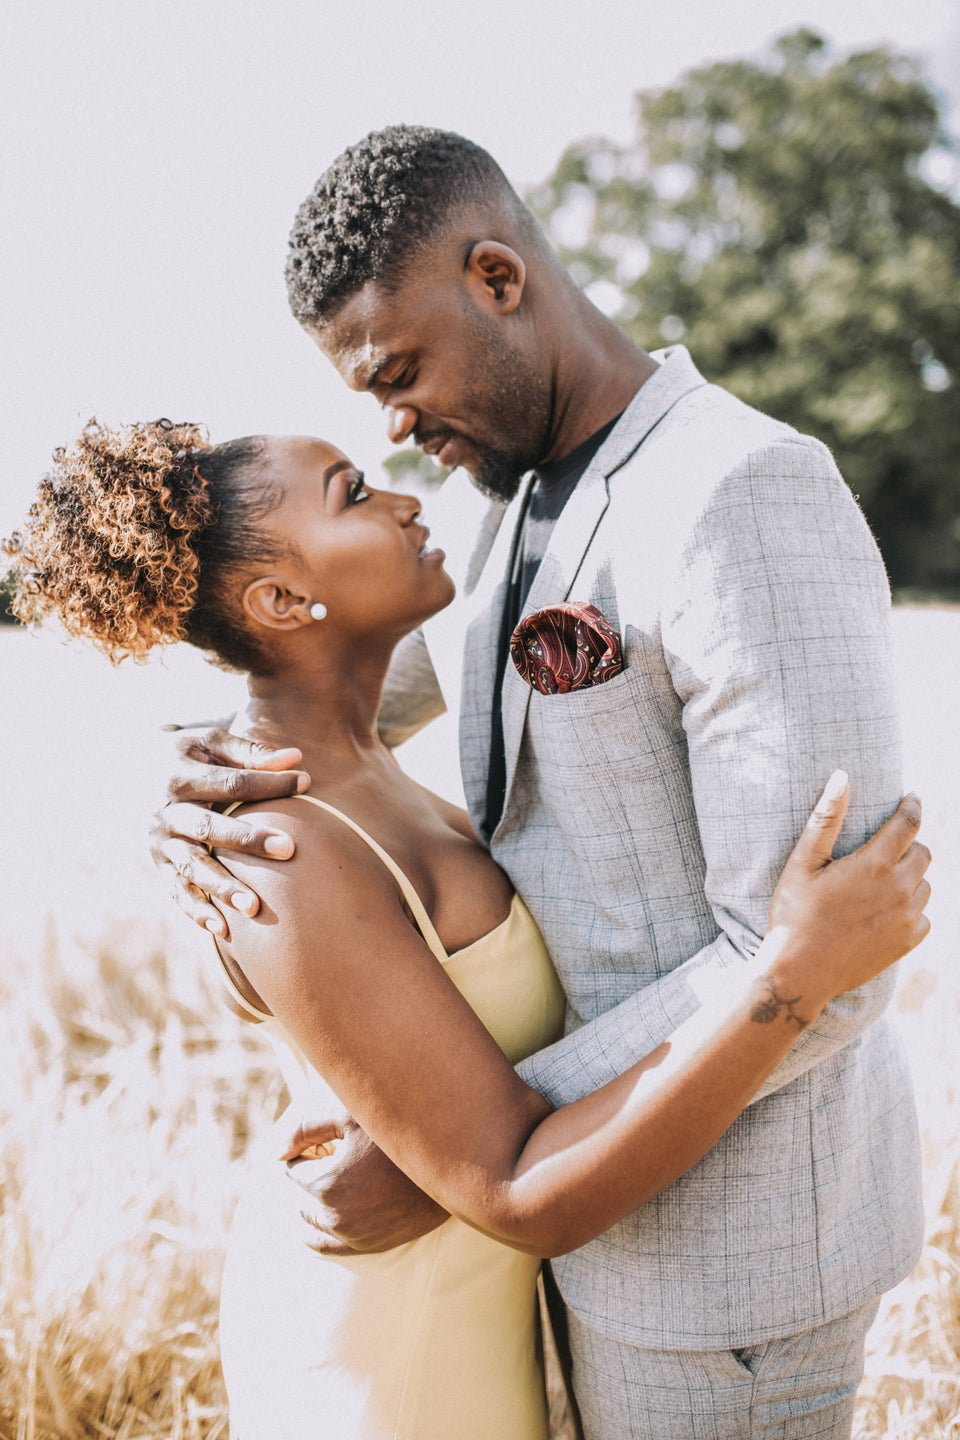 Insta Couple Crush Of The Week: Karl And Cassie Lokko's Woke Wedding Photos Went Viral and Now They Have A Baby On The Way